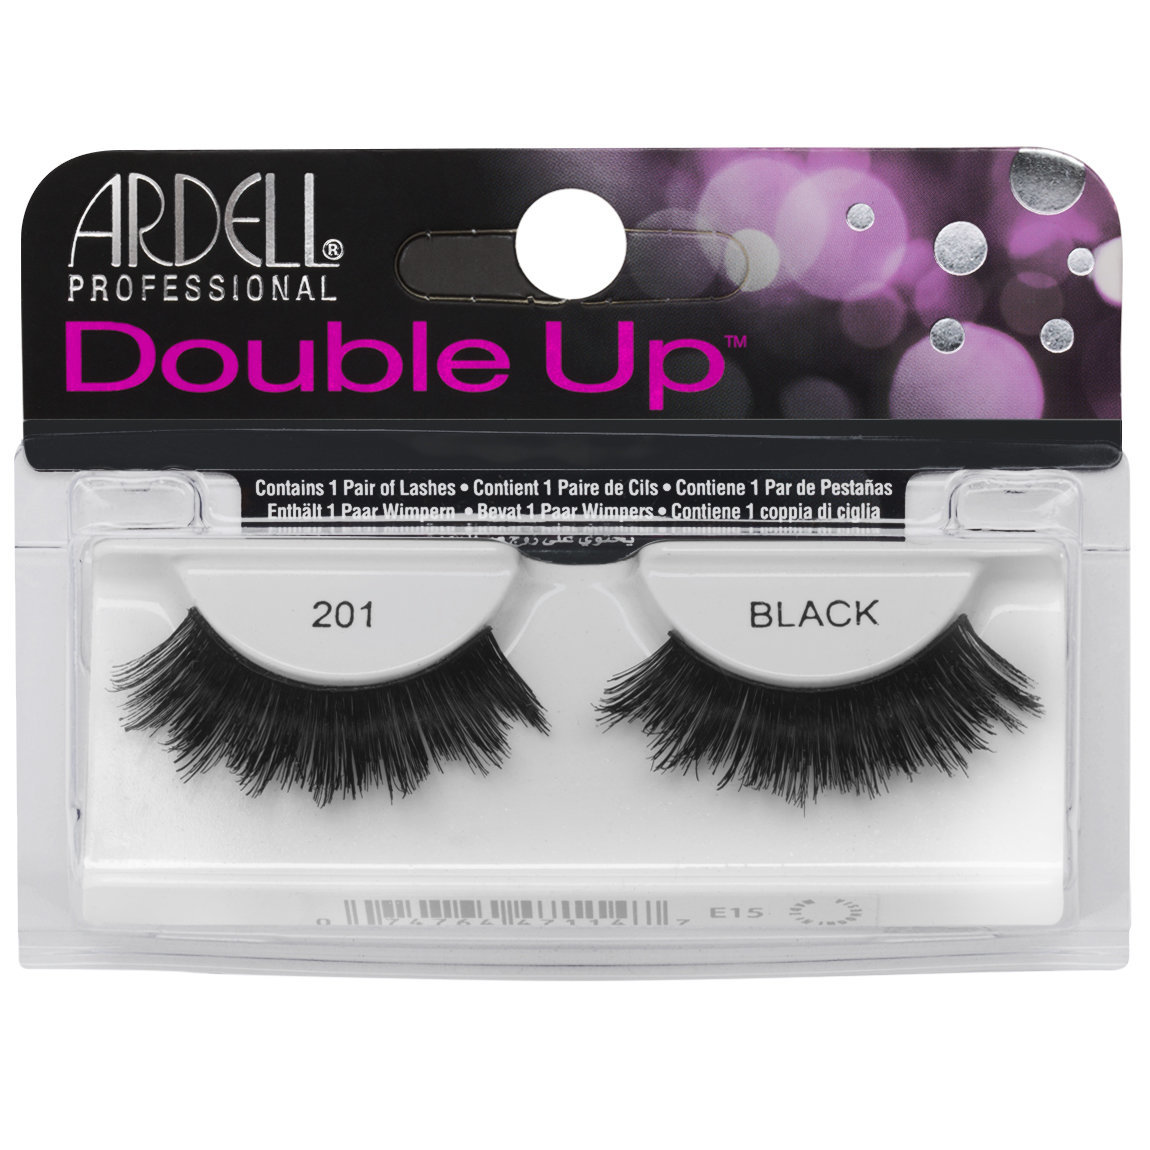 Ardell Double Up Lashes 201 Black alternative view 1.